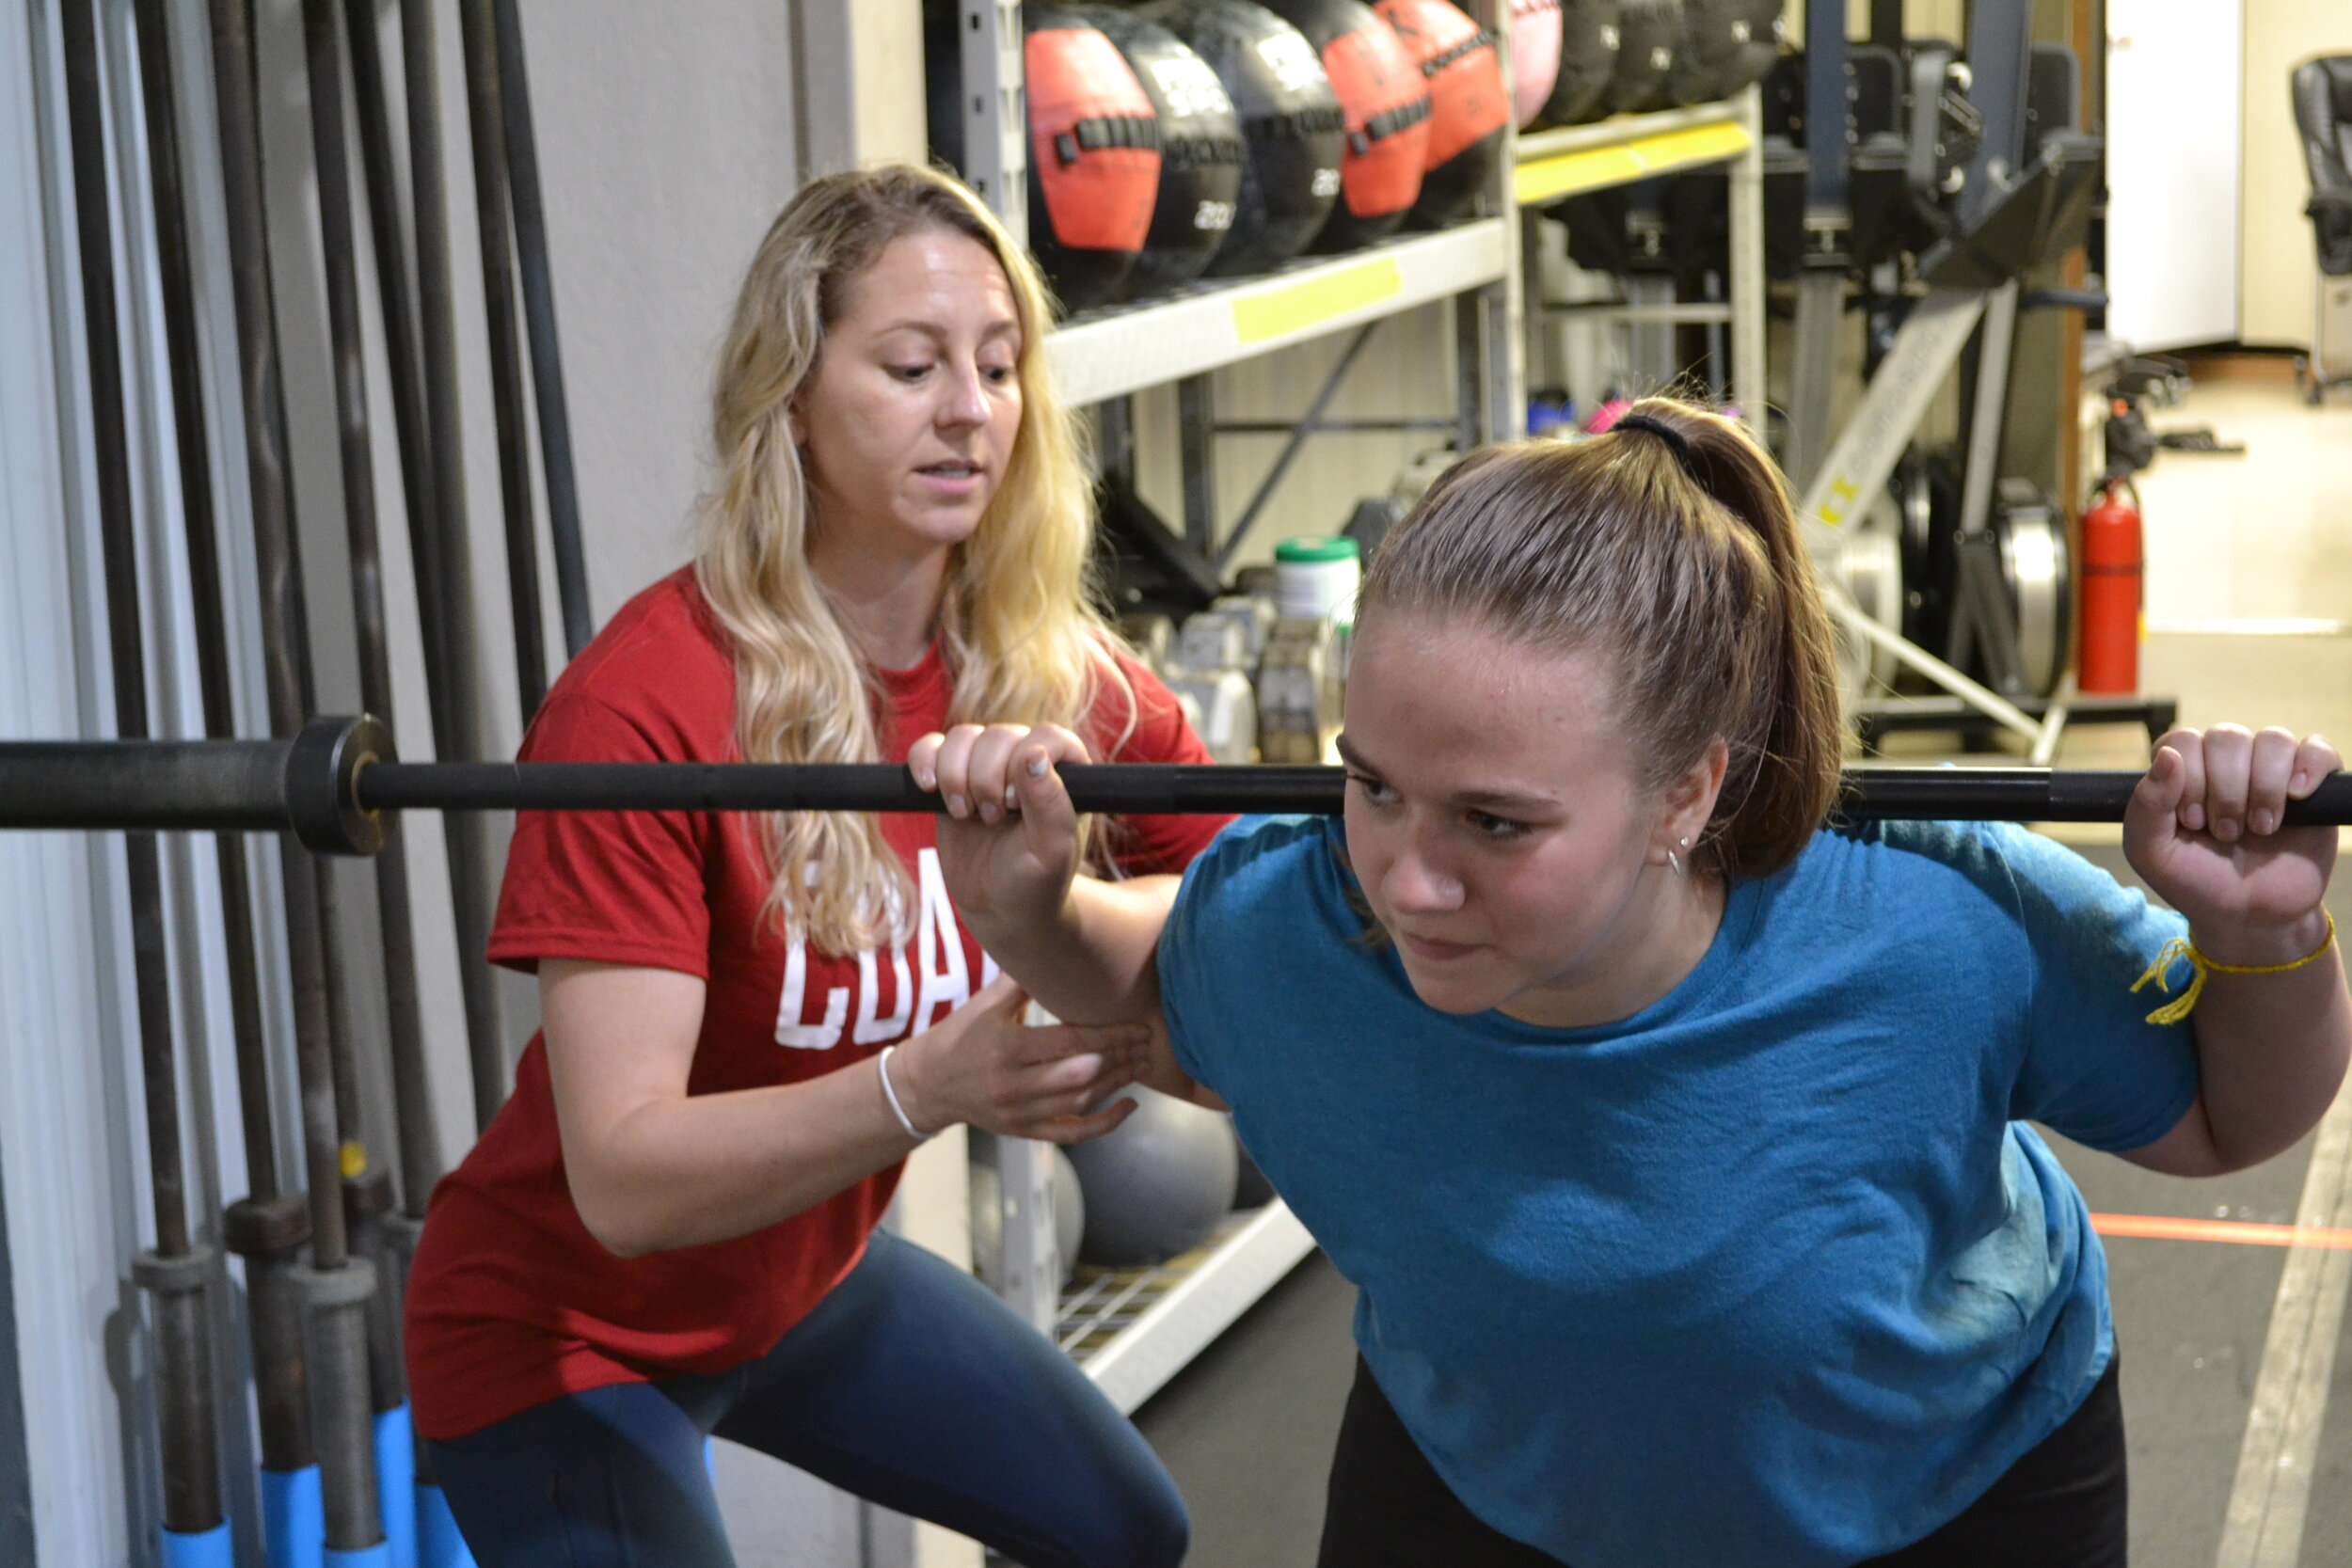 - Crossfit 134 Personal training Packages available now